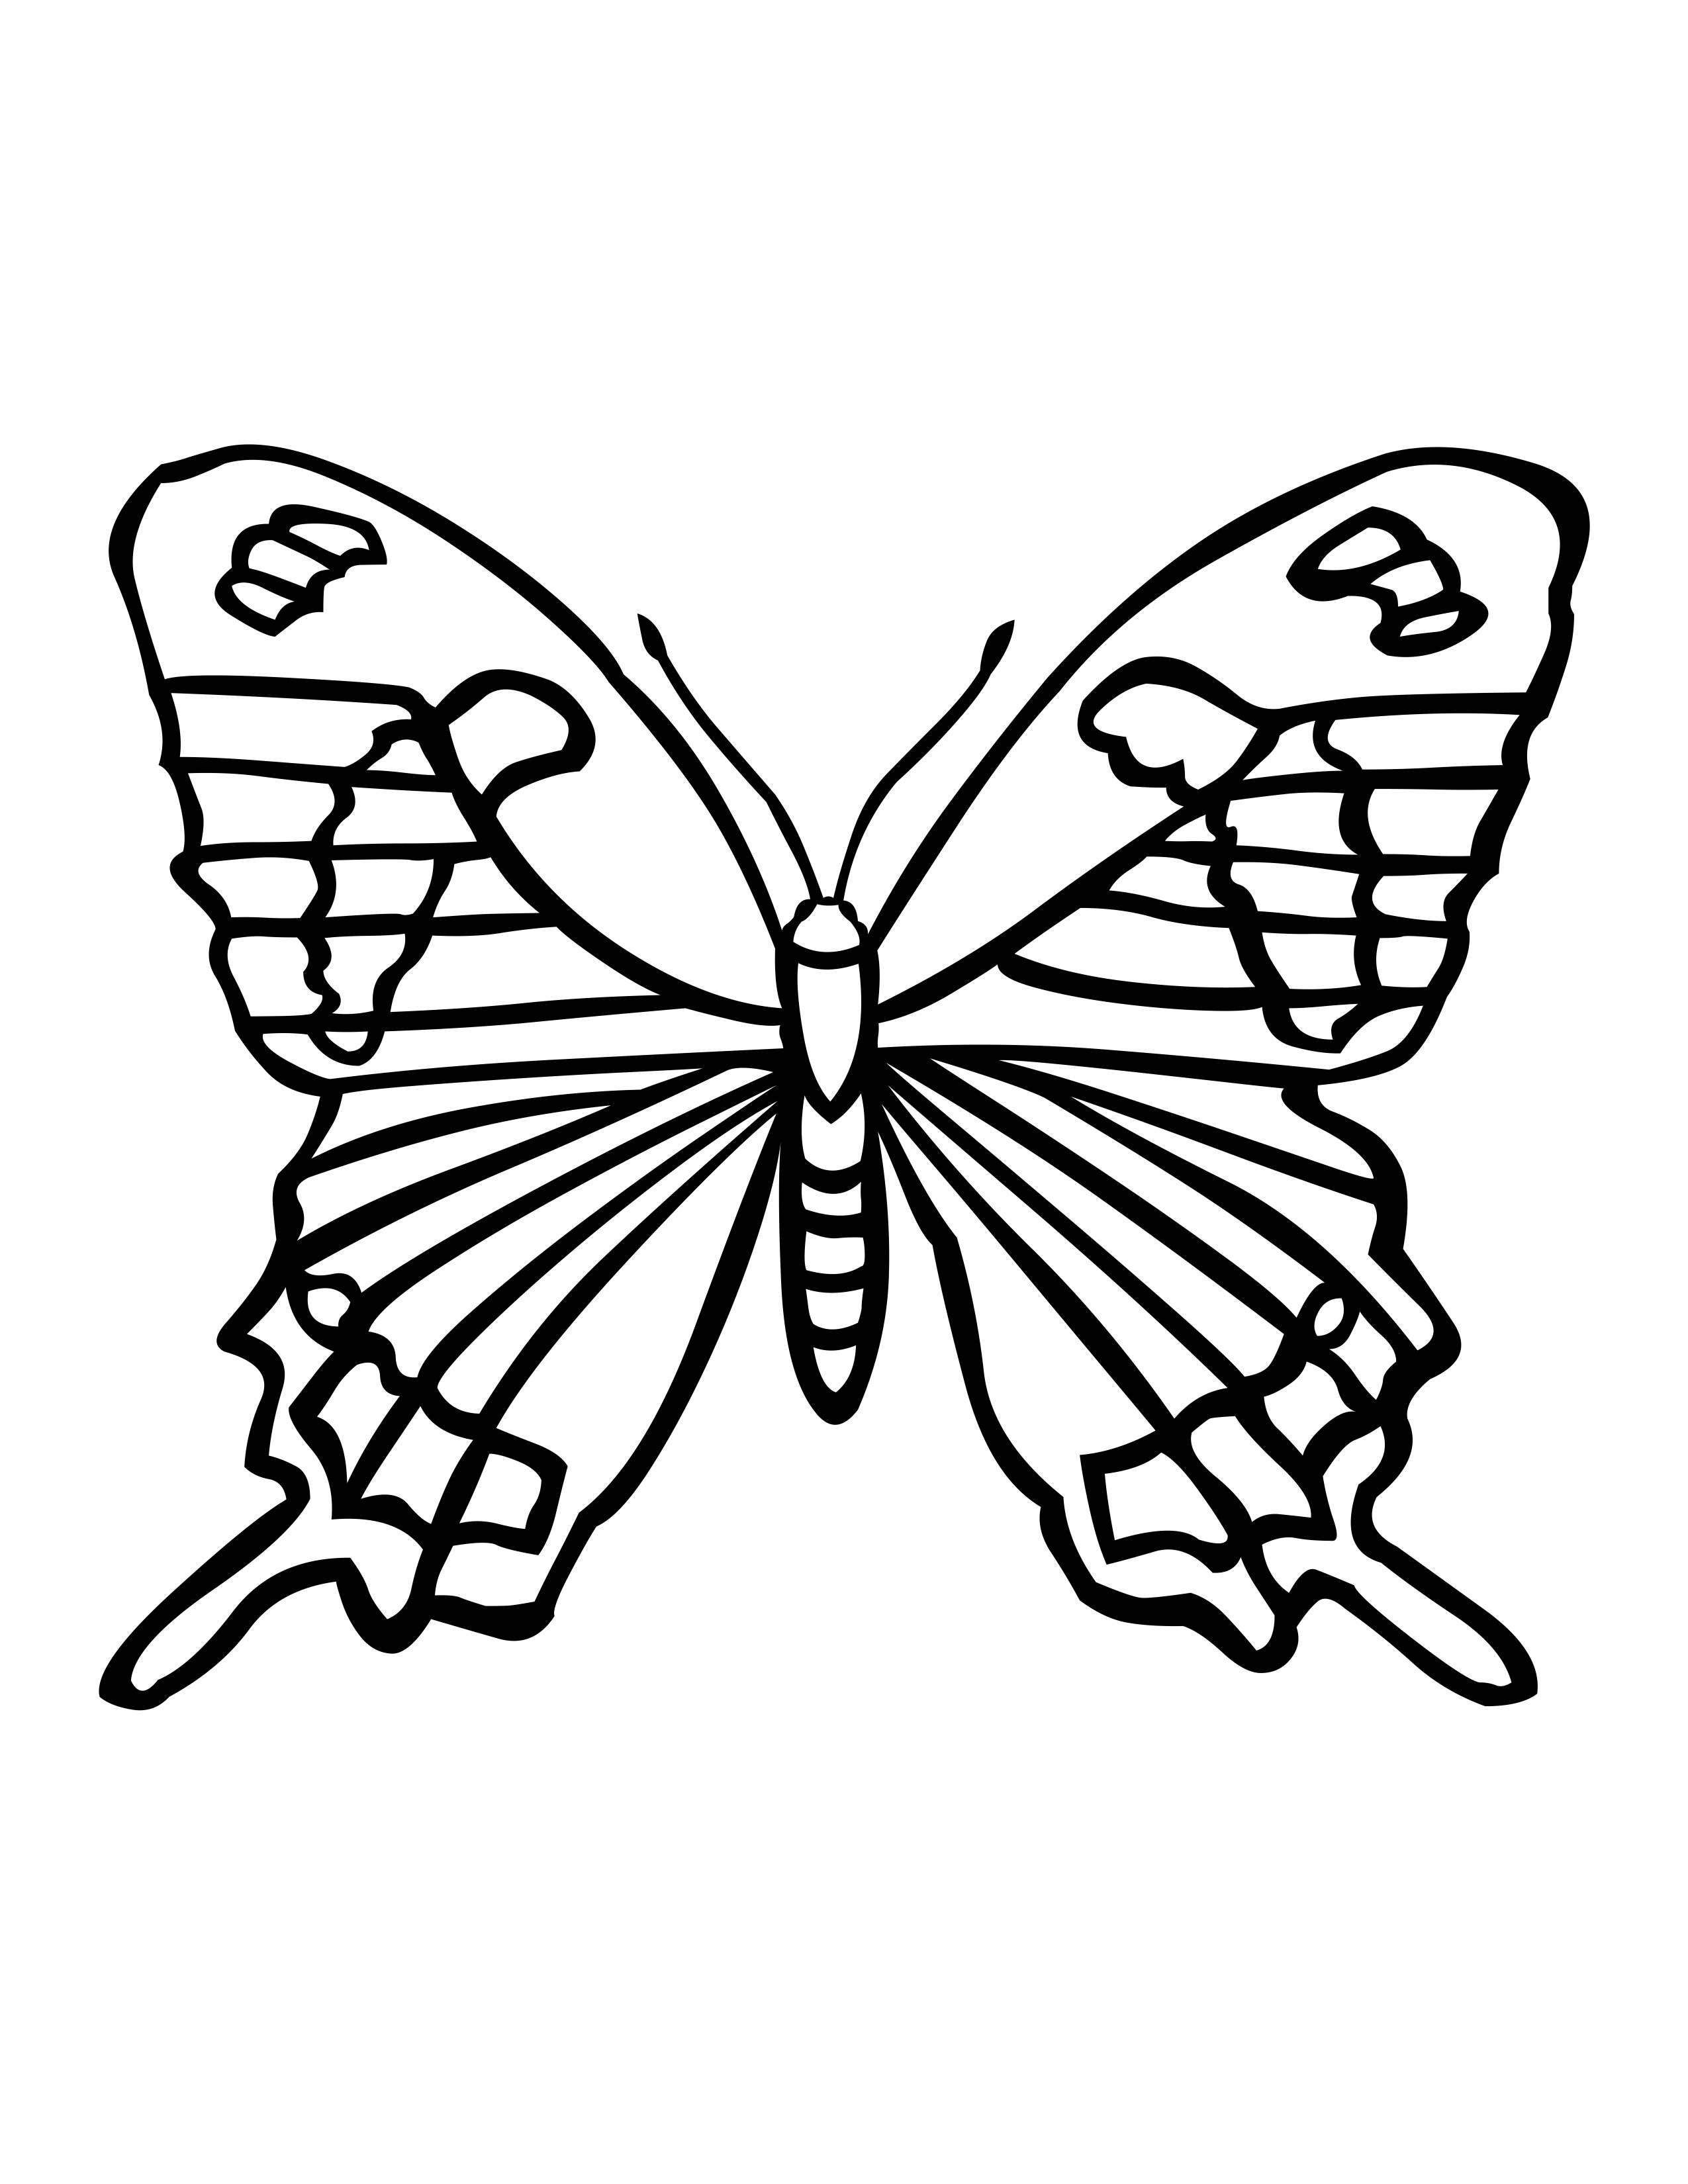 butterfly garden kit coloring pages - photo#29